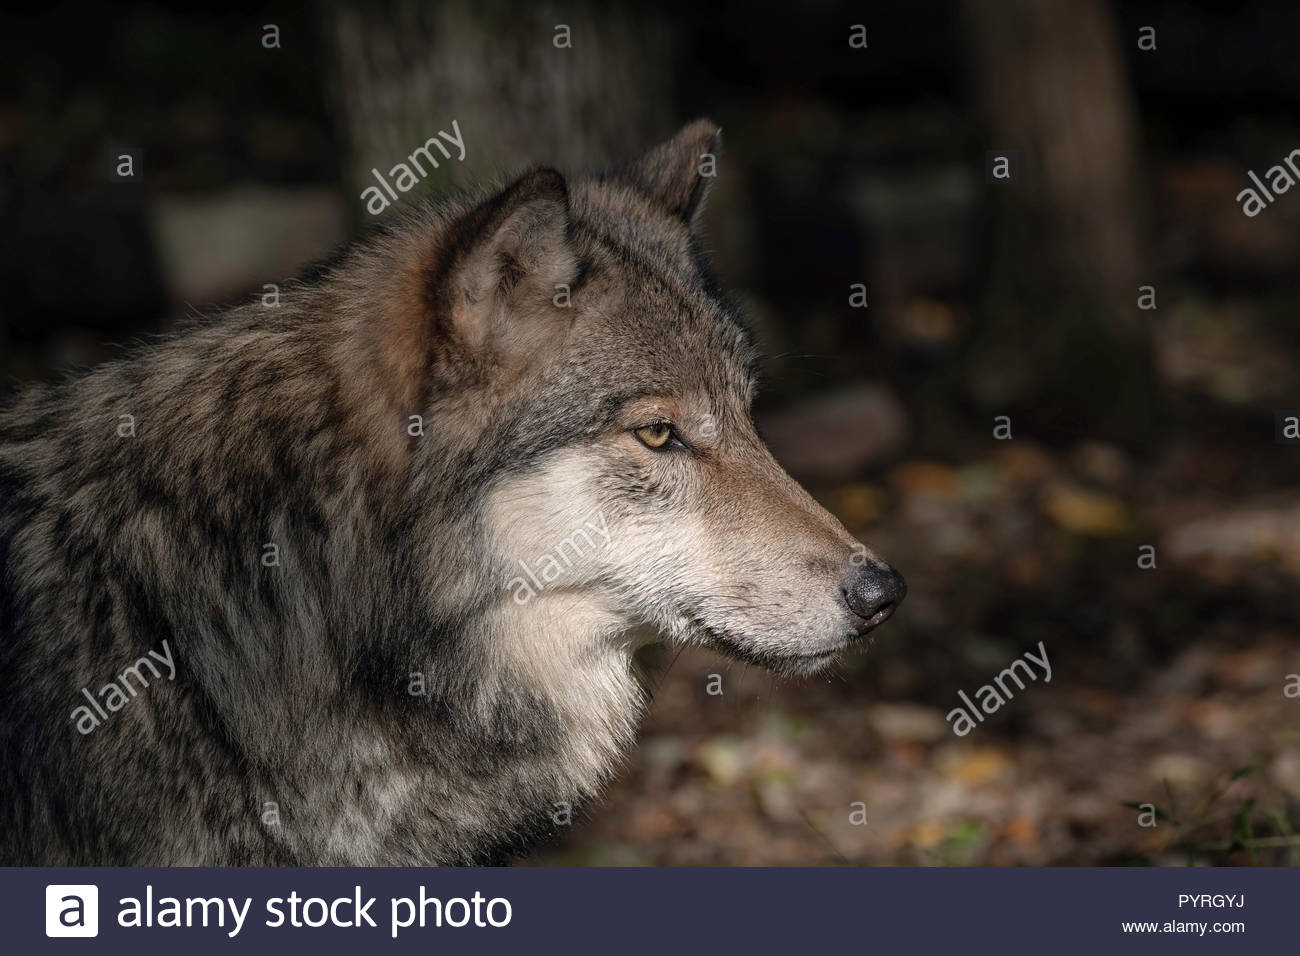 Timber Wolf (also known as a Gray Wolf or Grey Wolf) Portrait with Fall Color in the Background - Stock Image